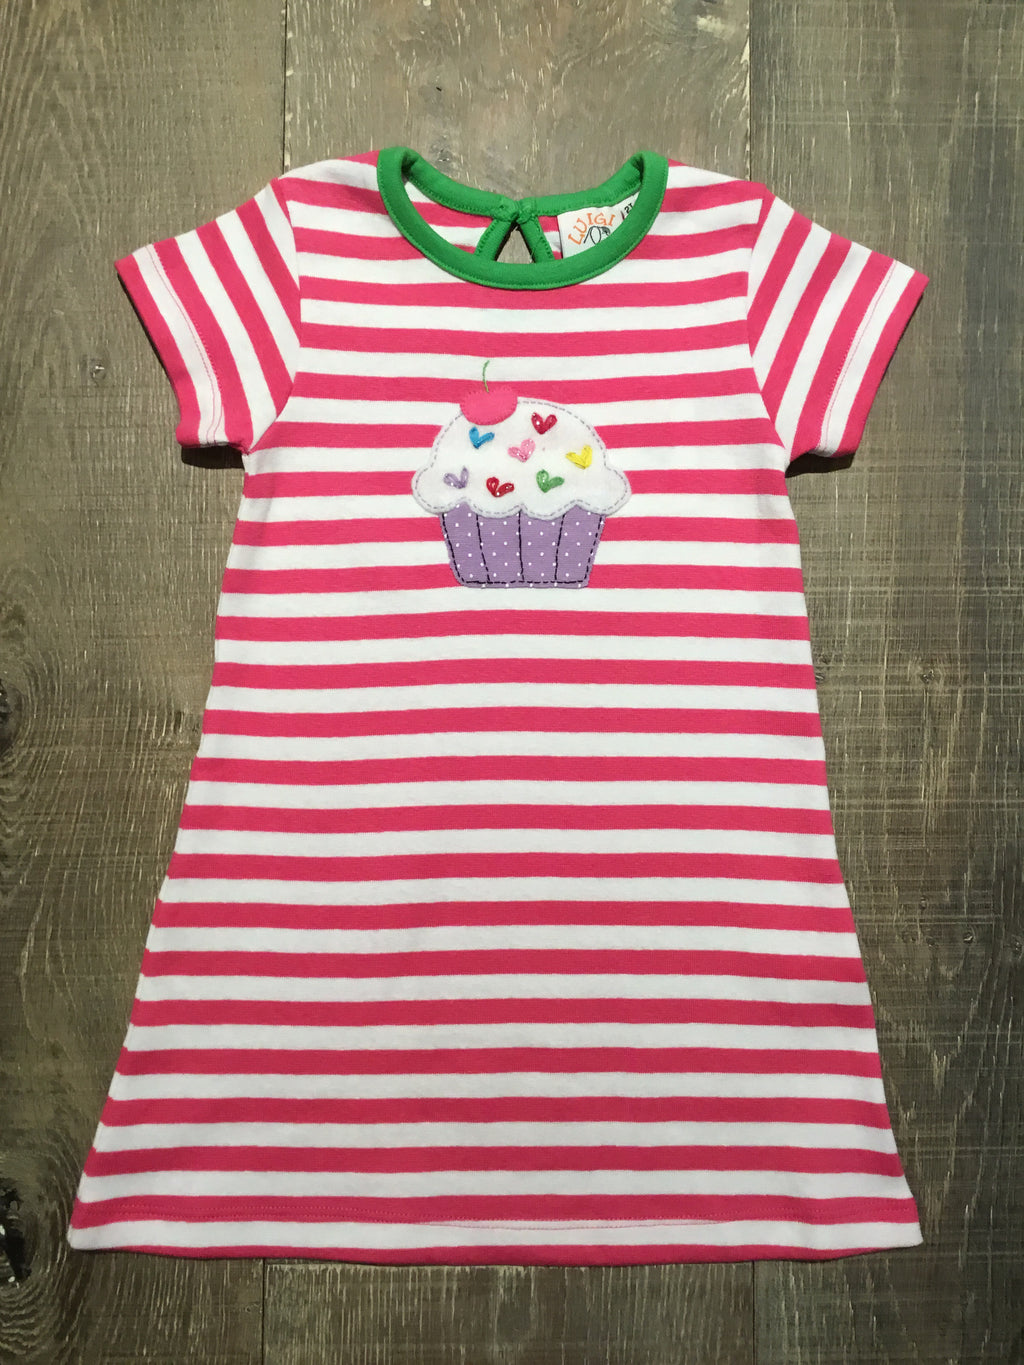 Cupcake A-Line Short Sleeve Dress